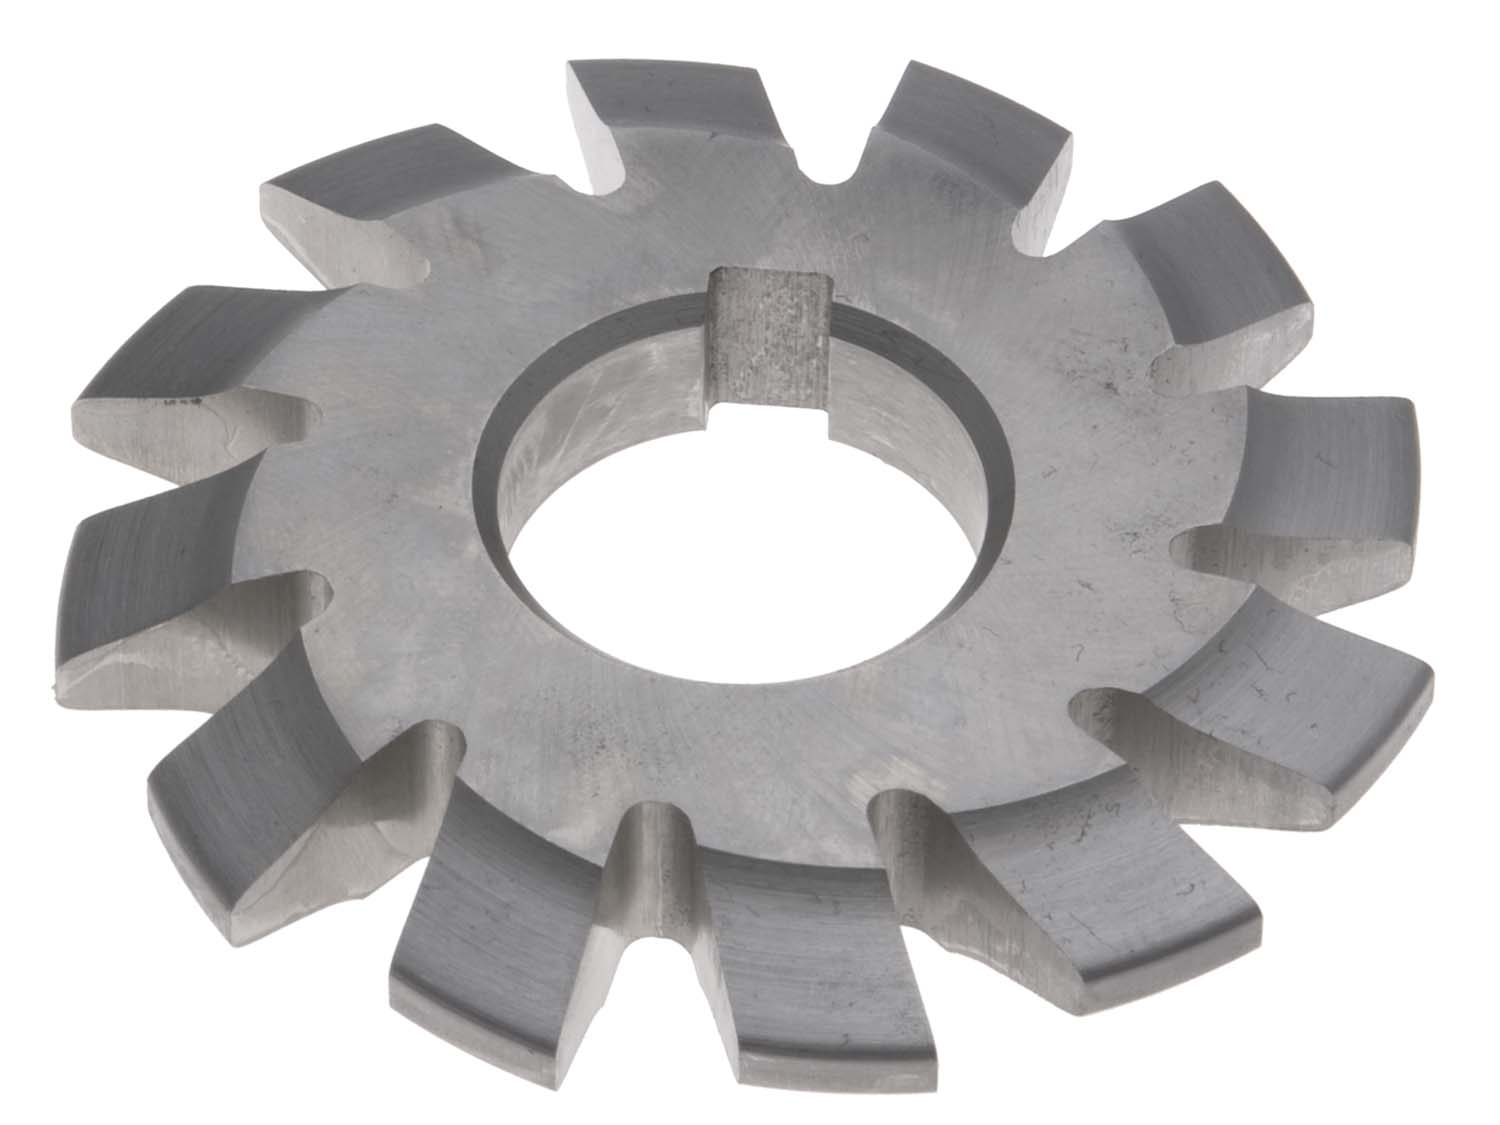 18 Diametral Pitch # 1 Involute Gear Cutter - 7/8 ID - 14-1/2 Degree Pressure Angle